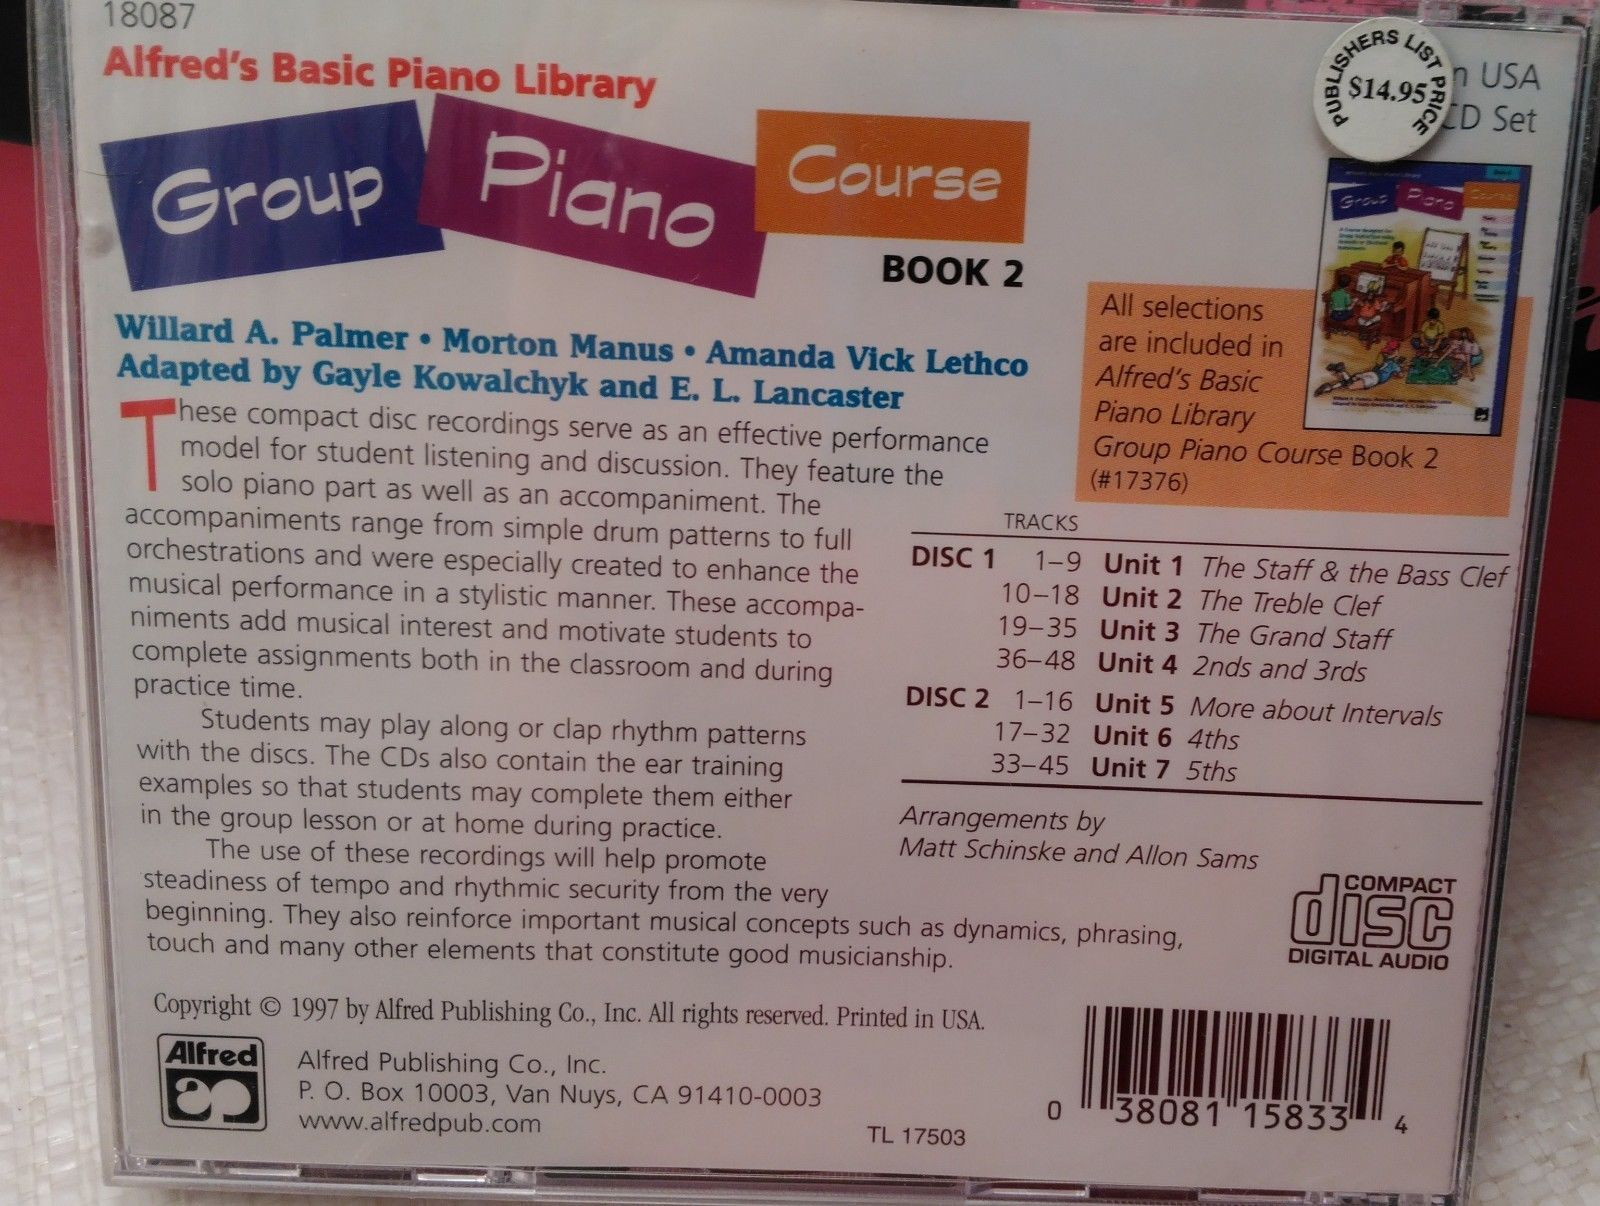 Alfred's Basic Group Piano Course: 2-CD Set, Level 2